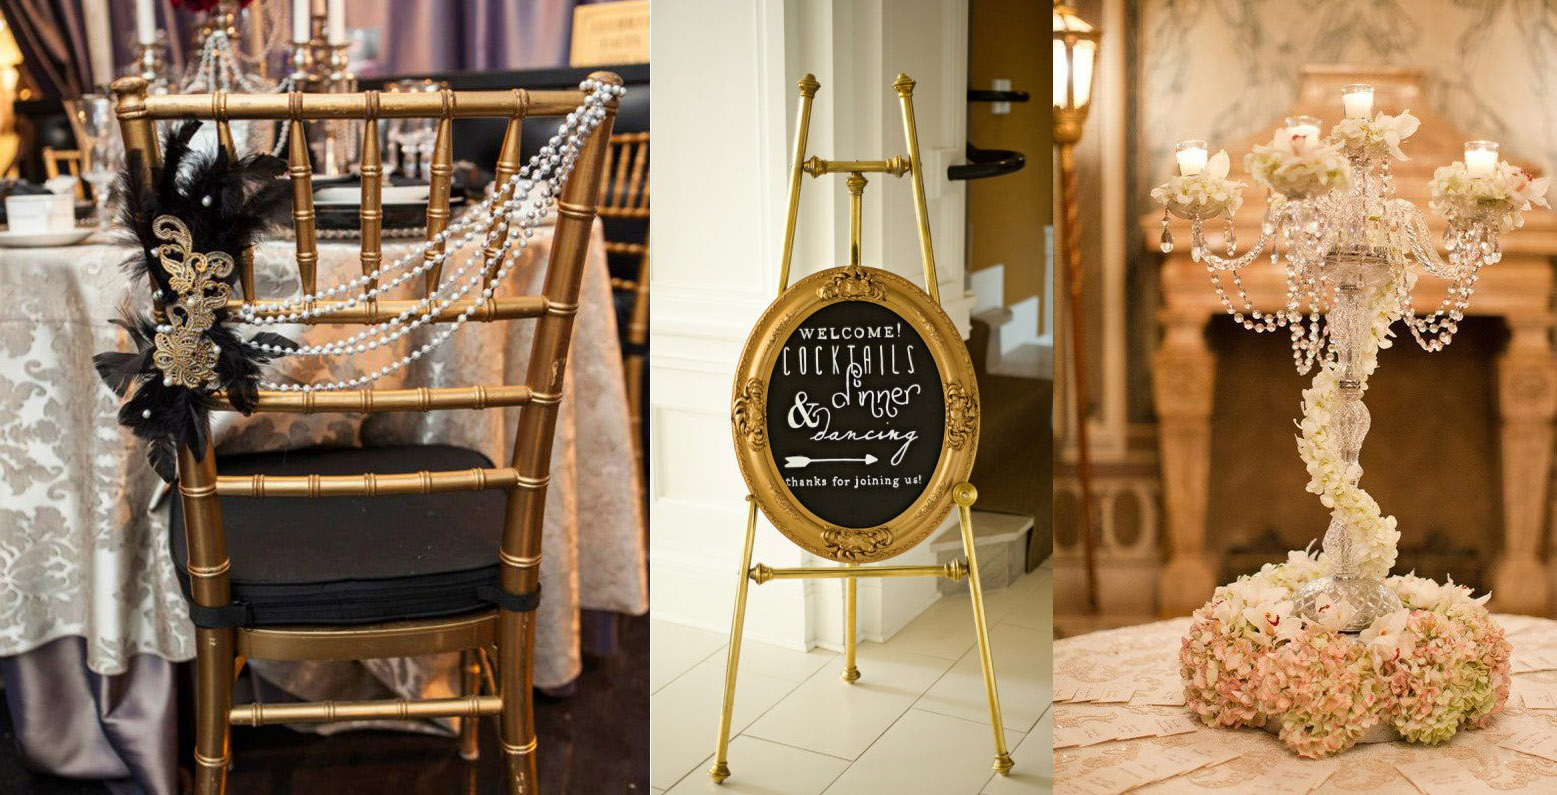 The great gatsby wedding decor inspiration and ideas for Great decor